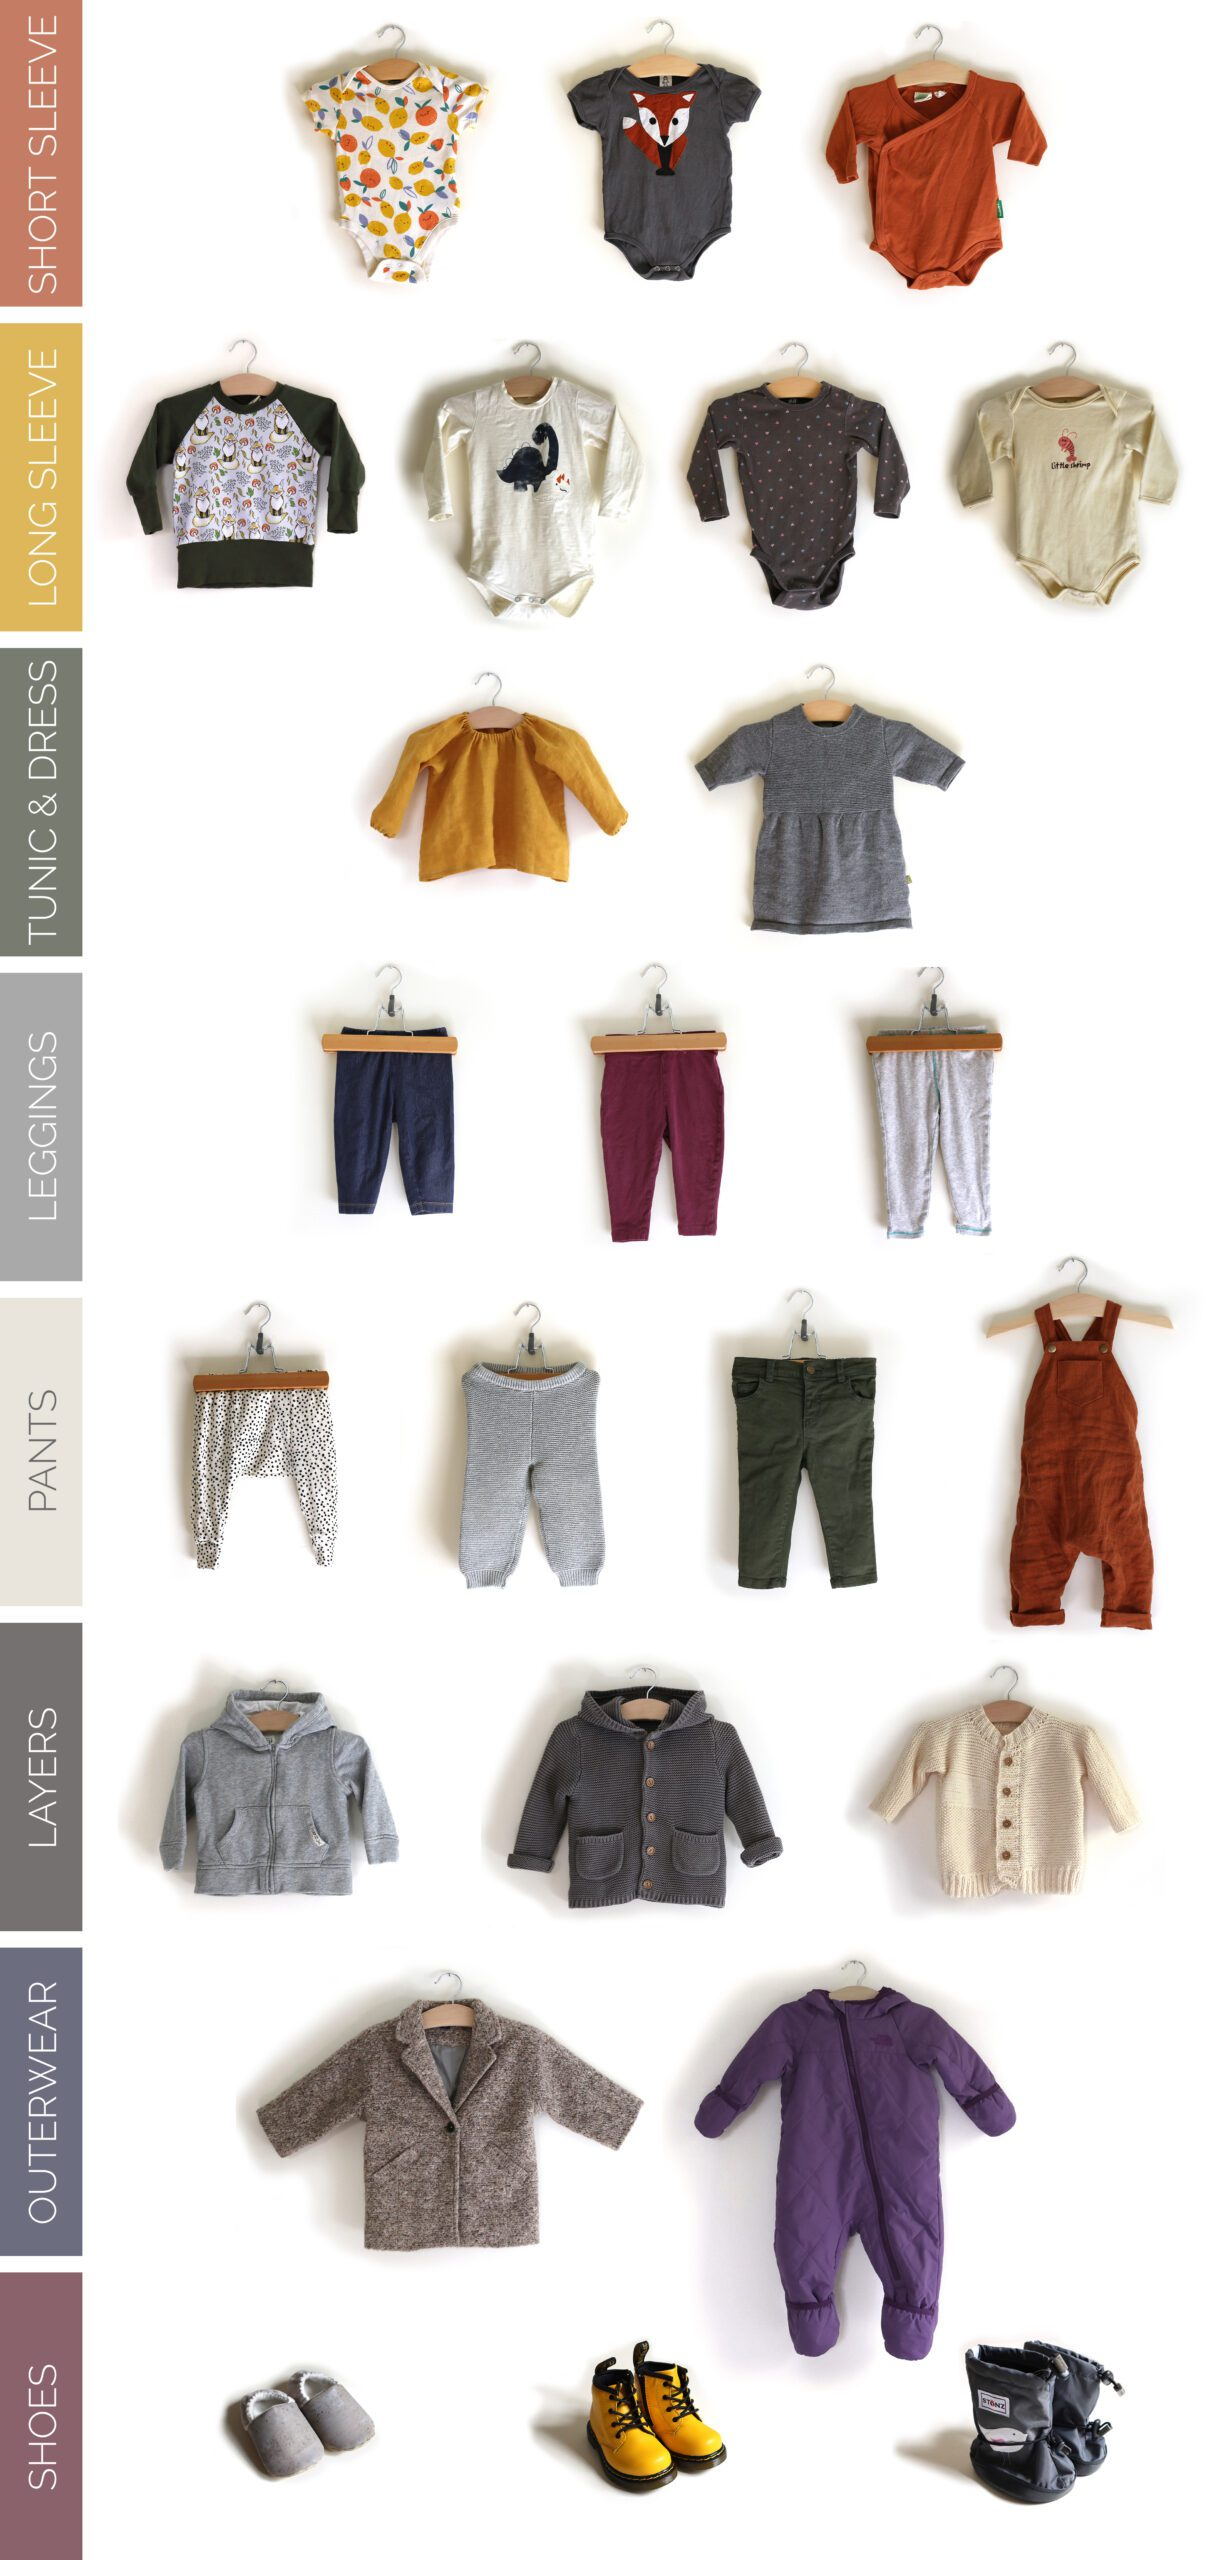 24 piece baby/toddler capsule wardrobe for fall and winter